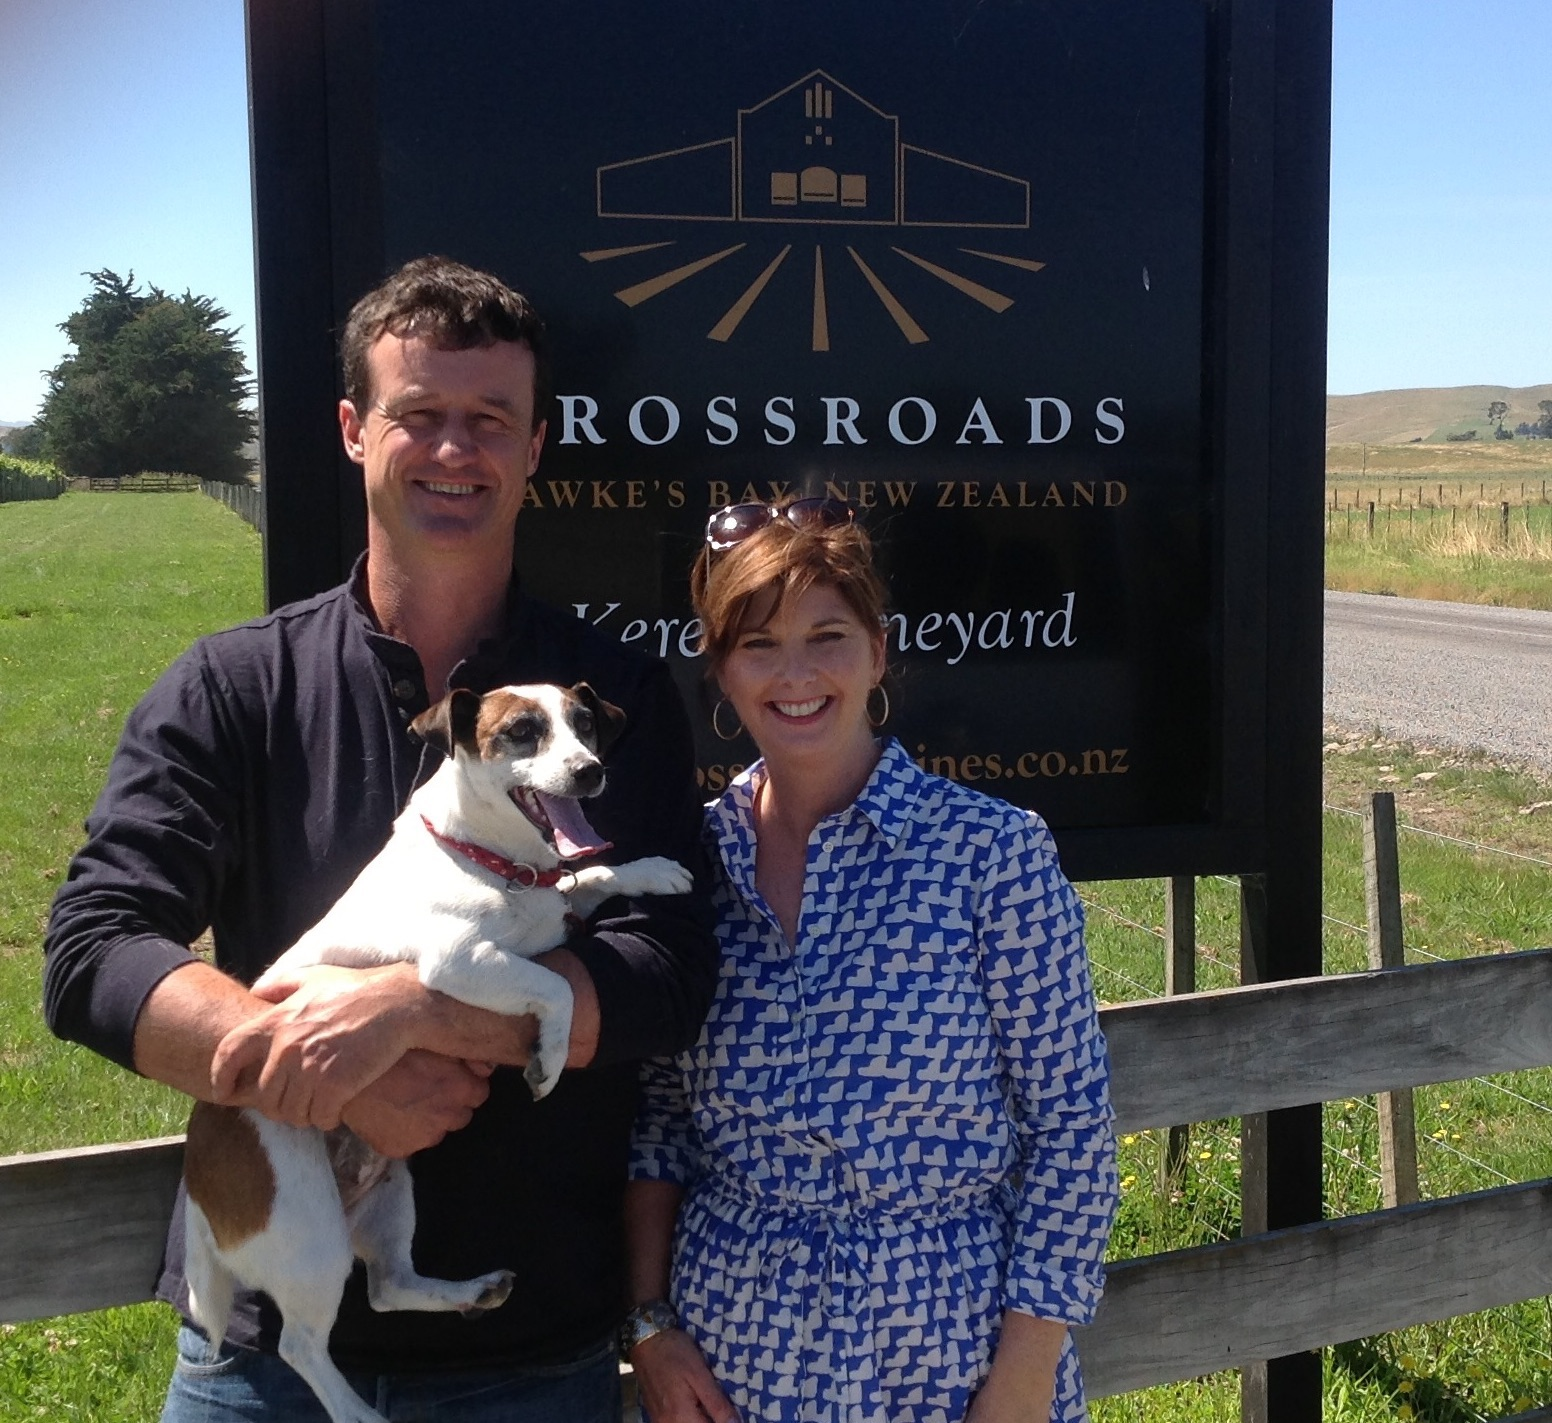 Tour of Crossroads winery Hawke's Bay, NZ with Miles Dinneen,Chief Winemaker